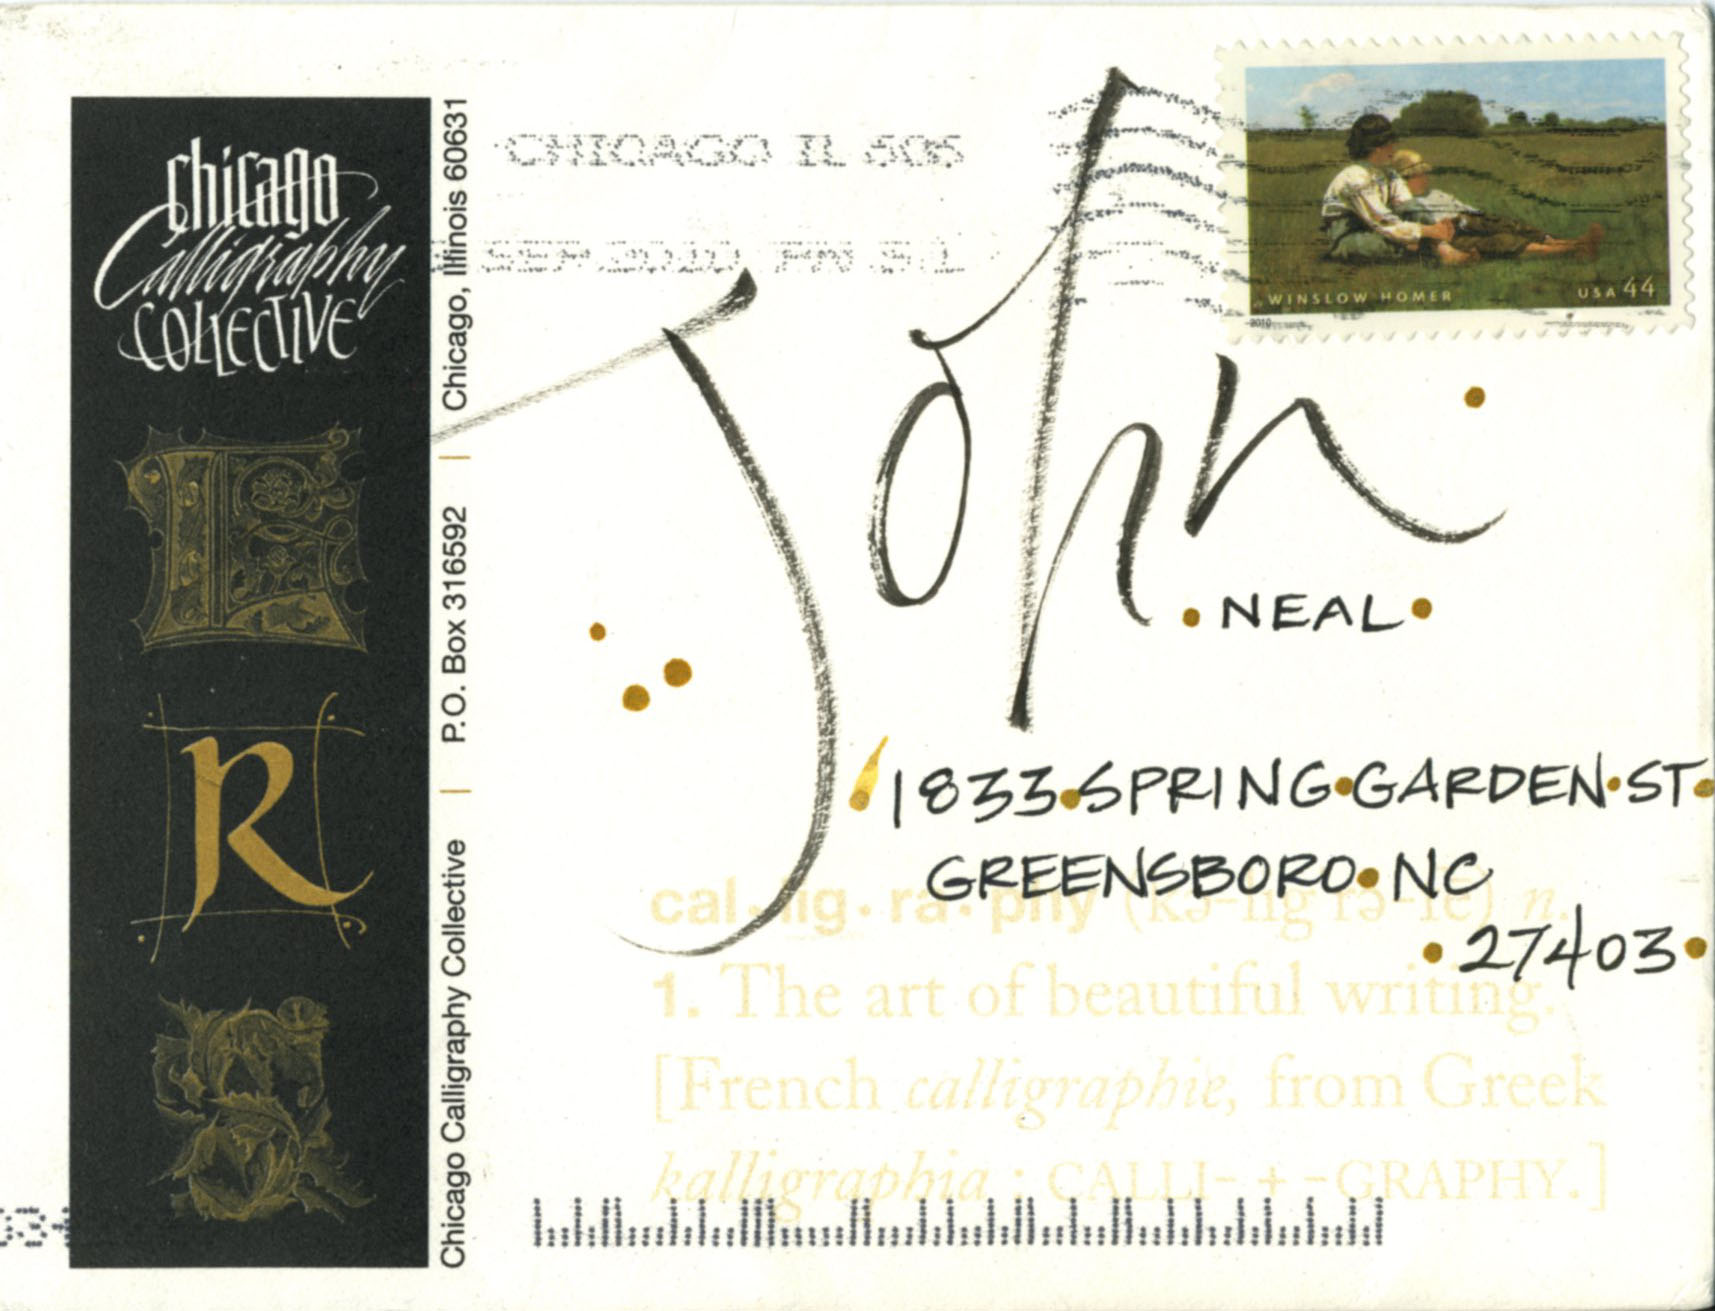 john neal bookseller calligraphy supplies pens ink